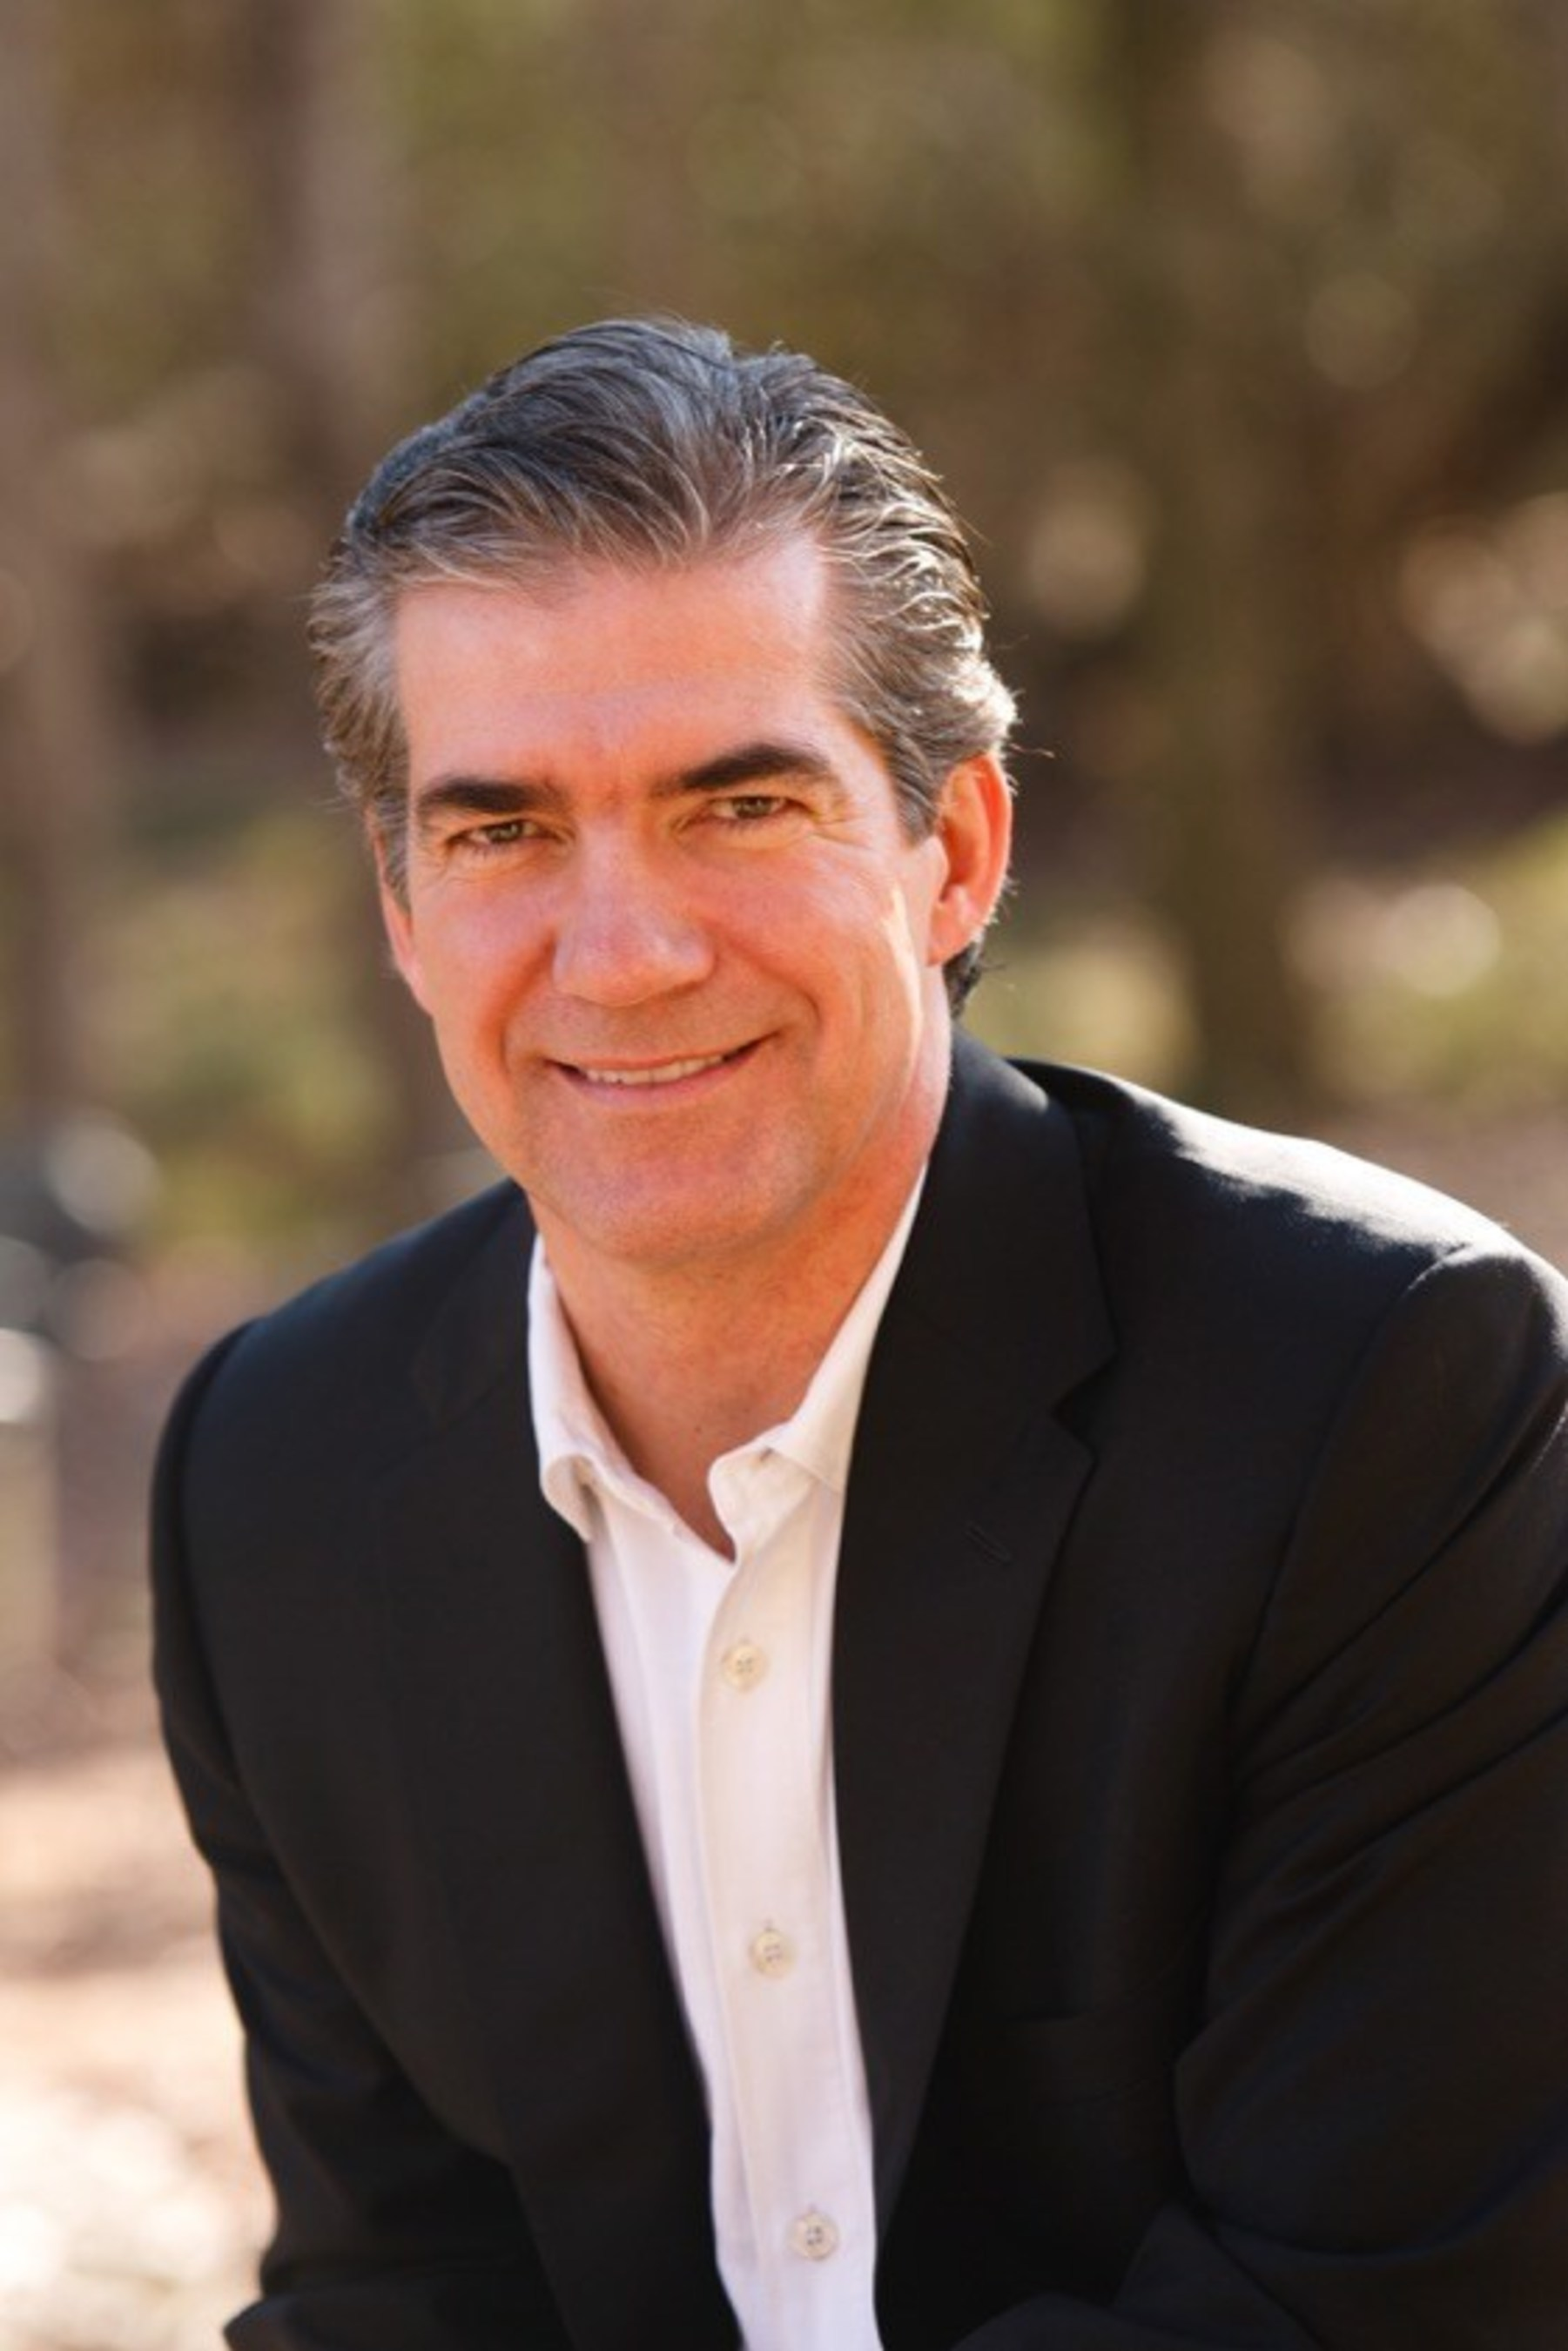 Joel Manby named President and Chief Executive Officer of SeaWorld Entertainment, Inc.